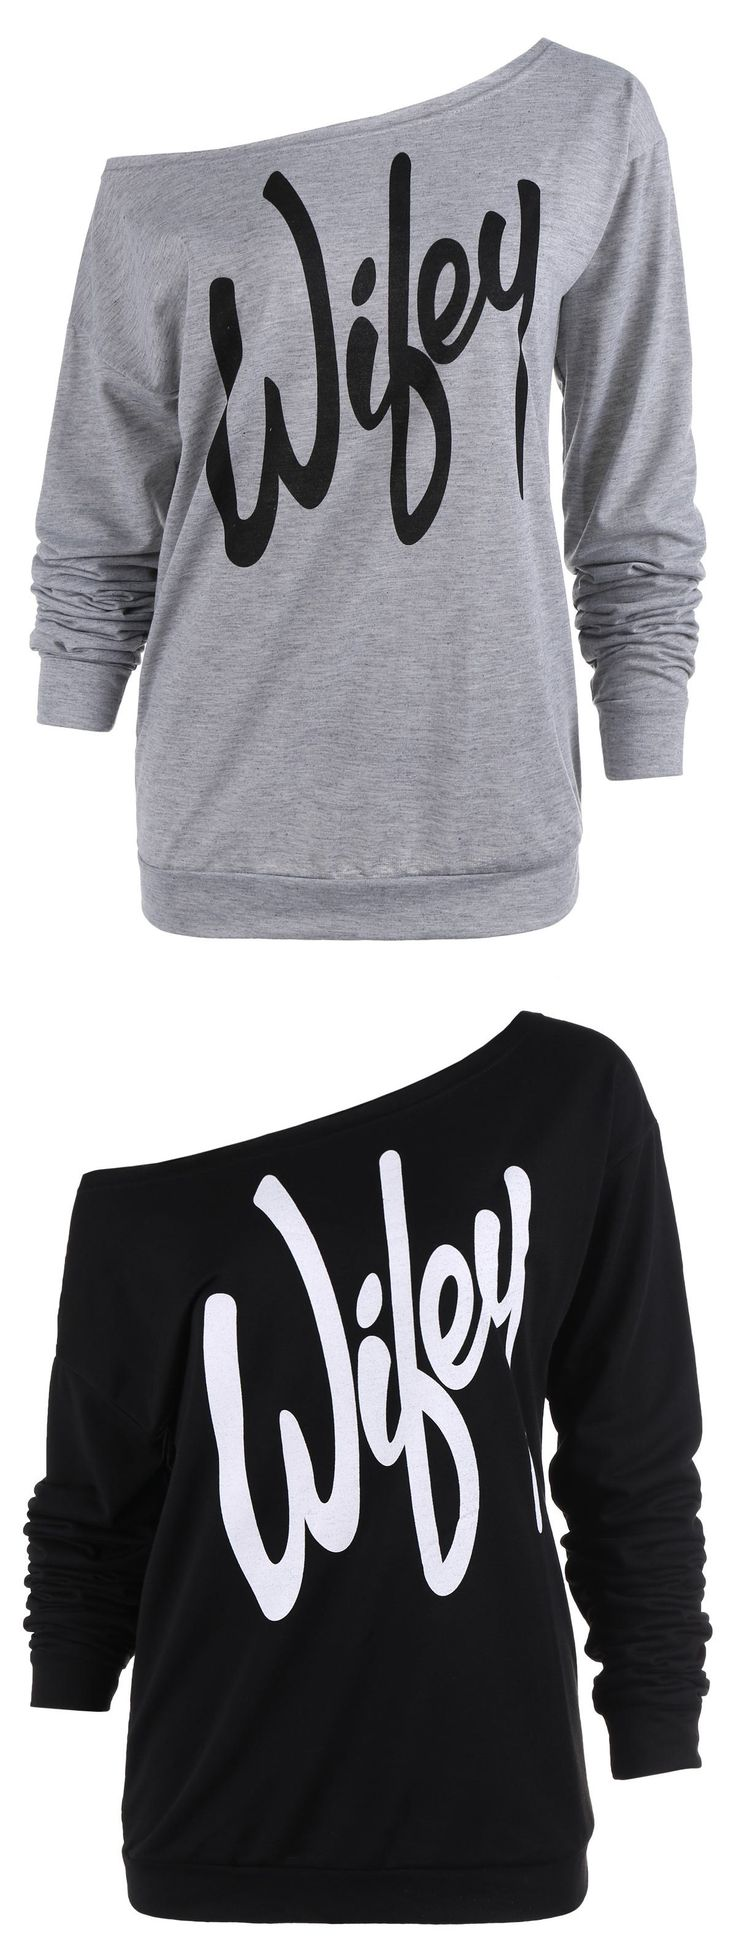 Only $7.97! Sexy Letter Print Slash Neck Pullover Sweatshirt    For Teens   Hoodie  Backtoschool   Casual